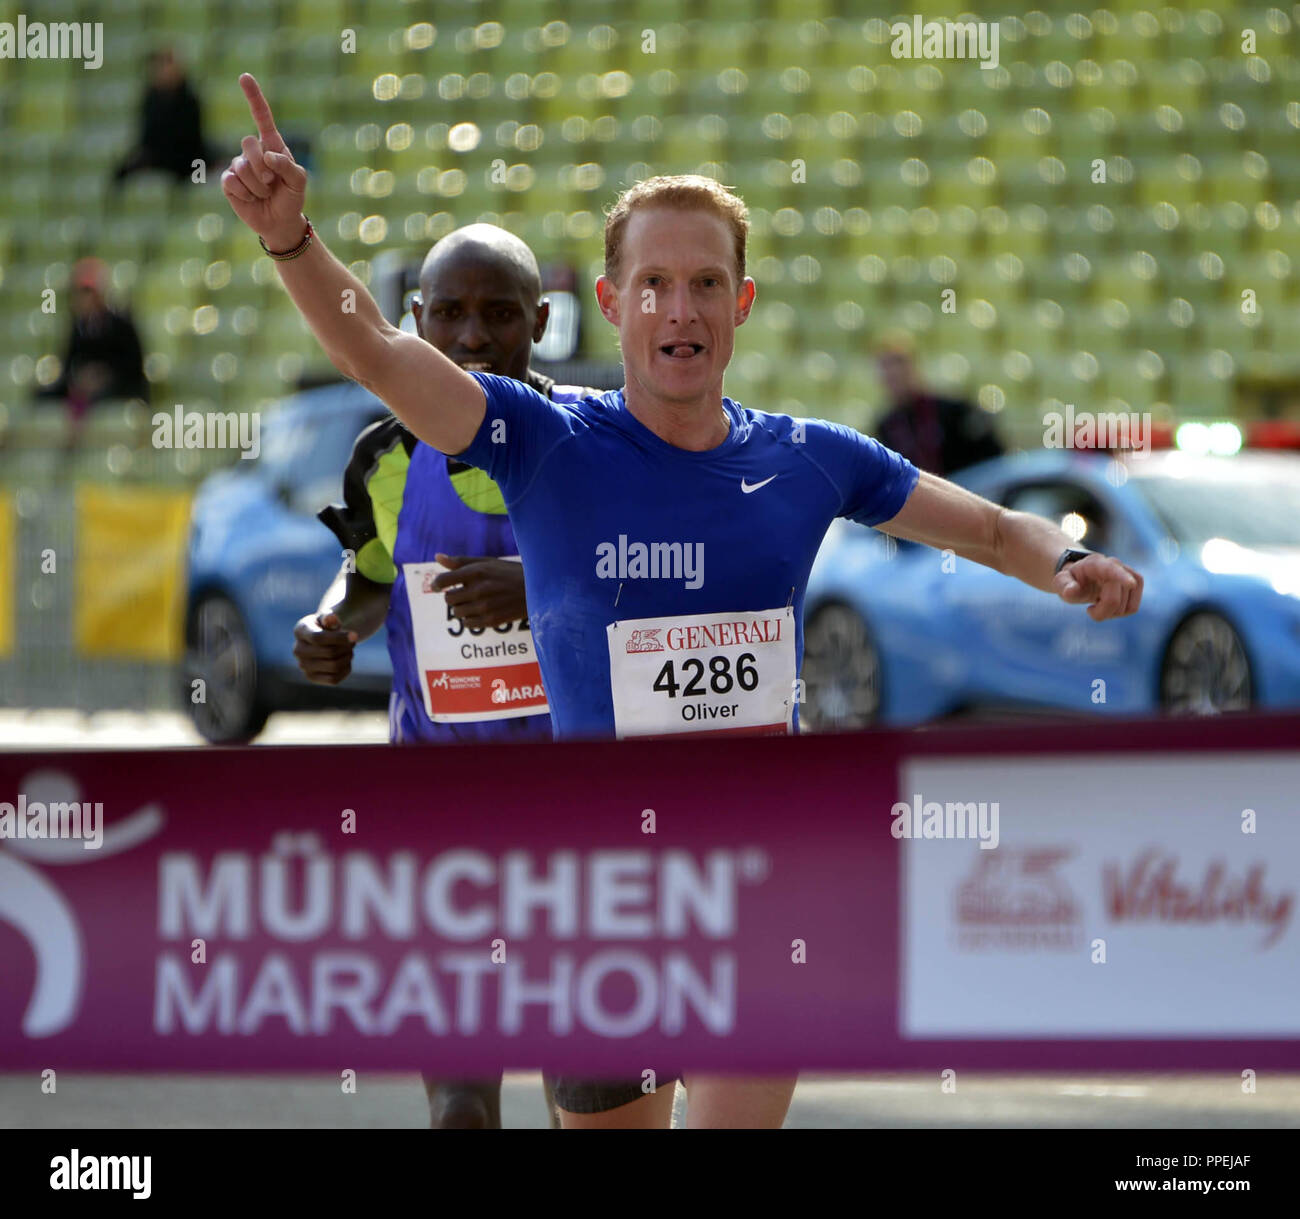 Oliver Herrmann, winner of the 31st Munich Marathon, at the finish line in the Olympiastadion. On the second place is the Kenyan pacemaker Charles Korir. - Stock Image